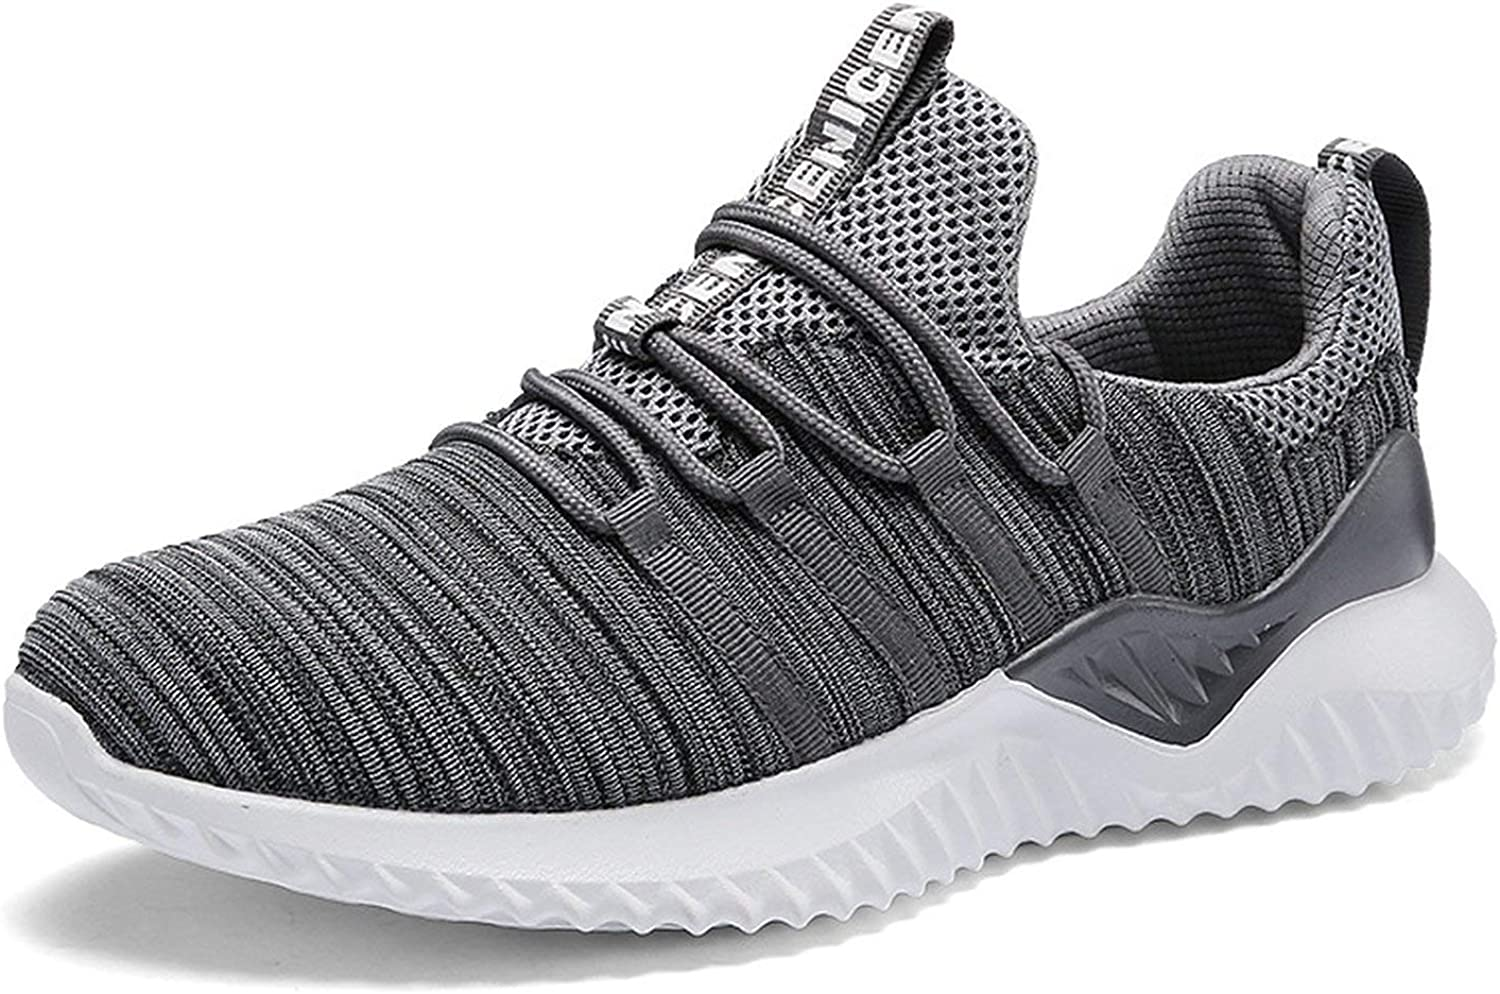 Glad You Came New Men Running shoes Men Sneakers Jogging Mesh Sport shoes Original Outdoor Trainer Breathable Plus Large Size 46